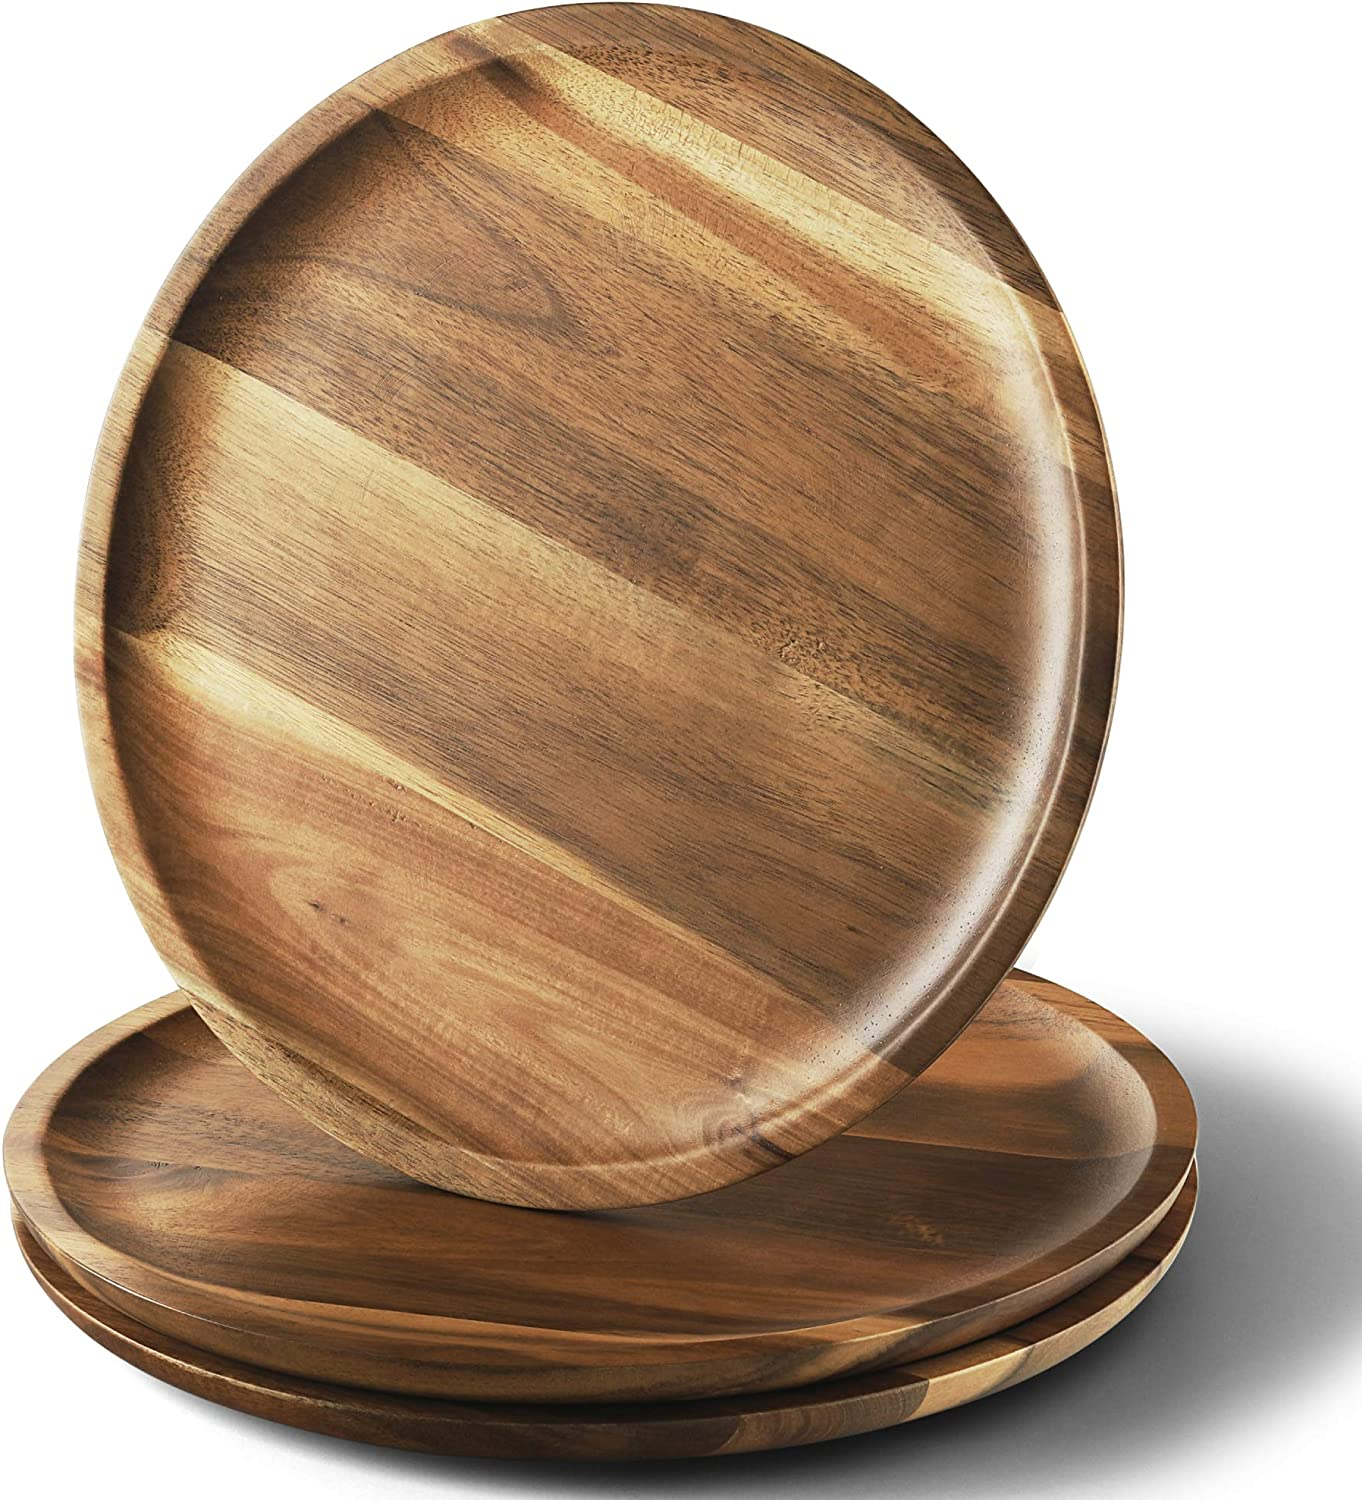 FANICHI Acacia Wood Dinner Plates, 11 Inch Round Wood Plates Set of 3, Easy Cleaning & - Best Christmas Gift